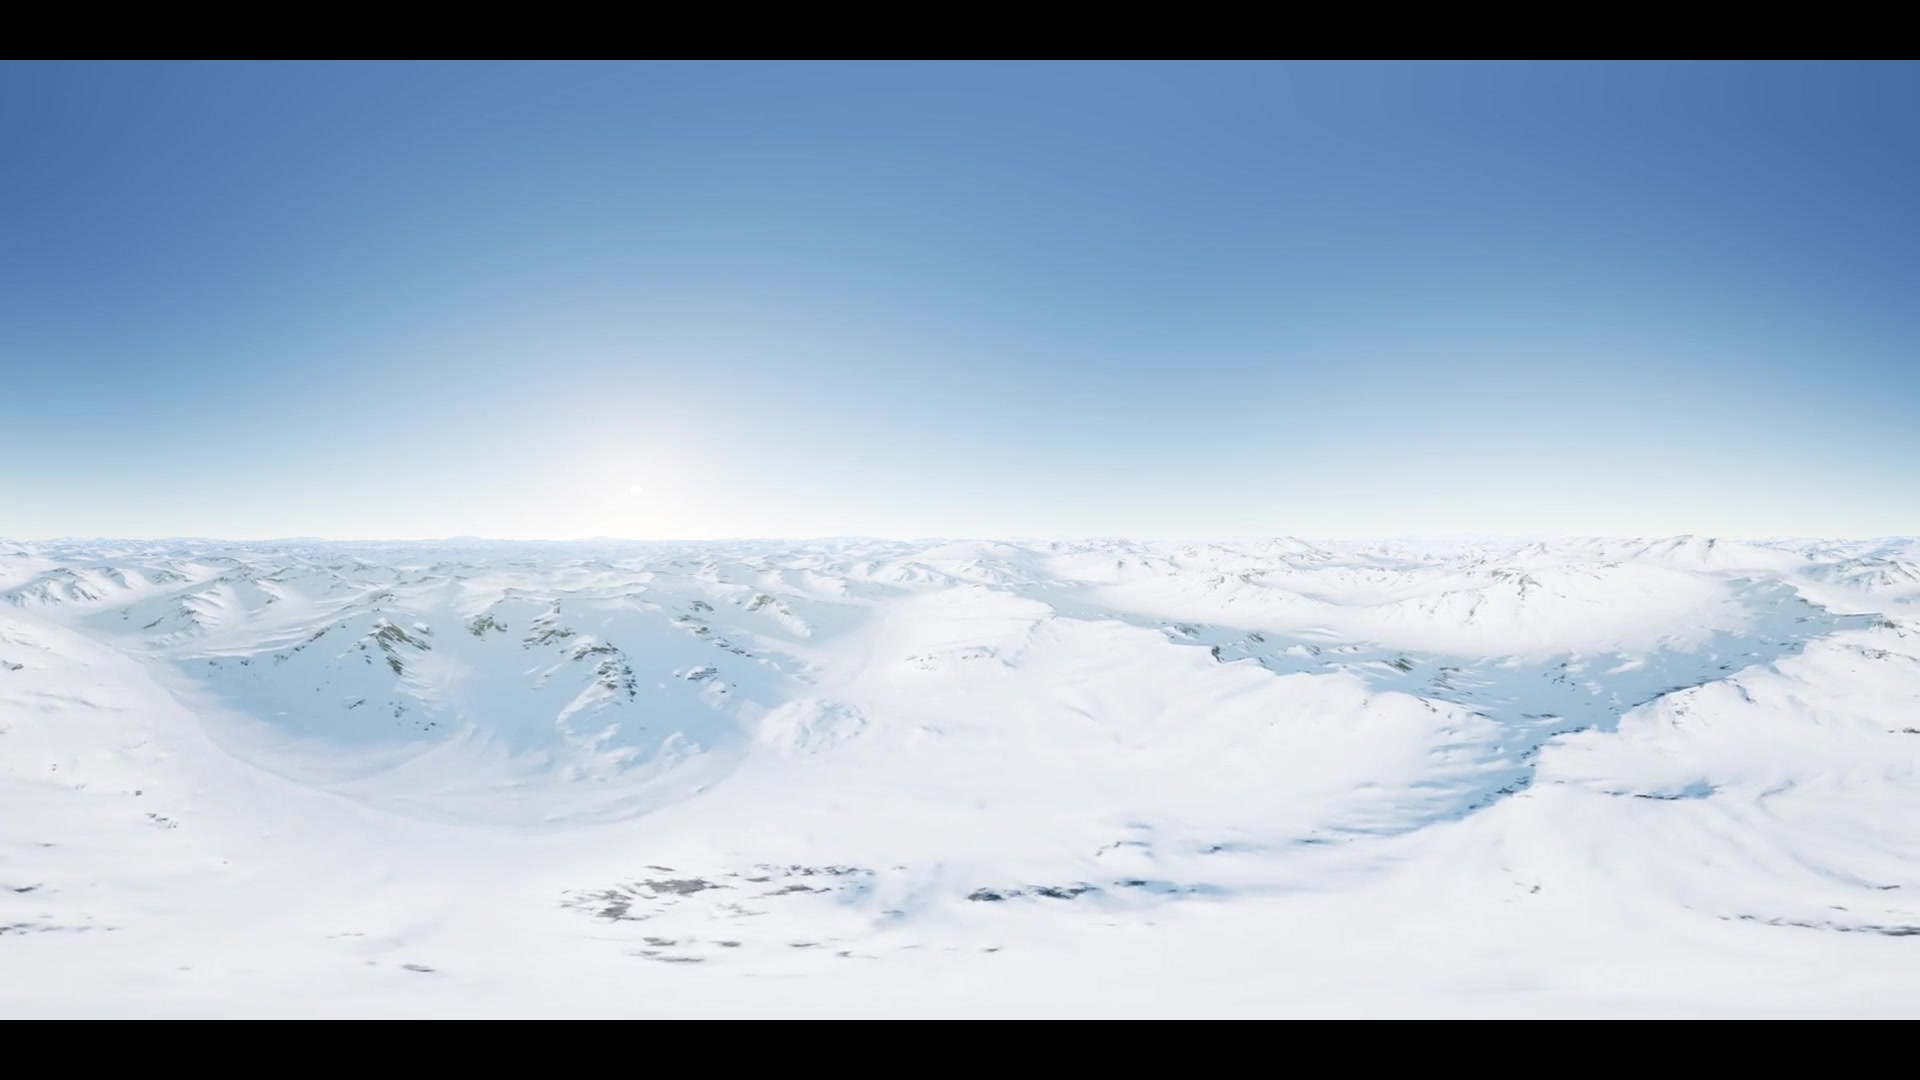 vr 360 camera moving above Polar Snow Rocky Mountains Ridges In a cold polar region. ready for use in vr360 virtual reality